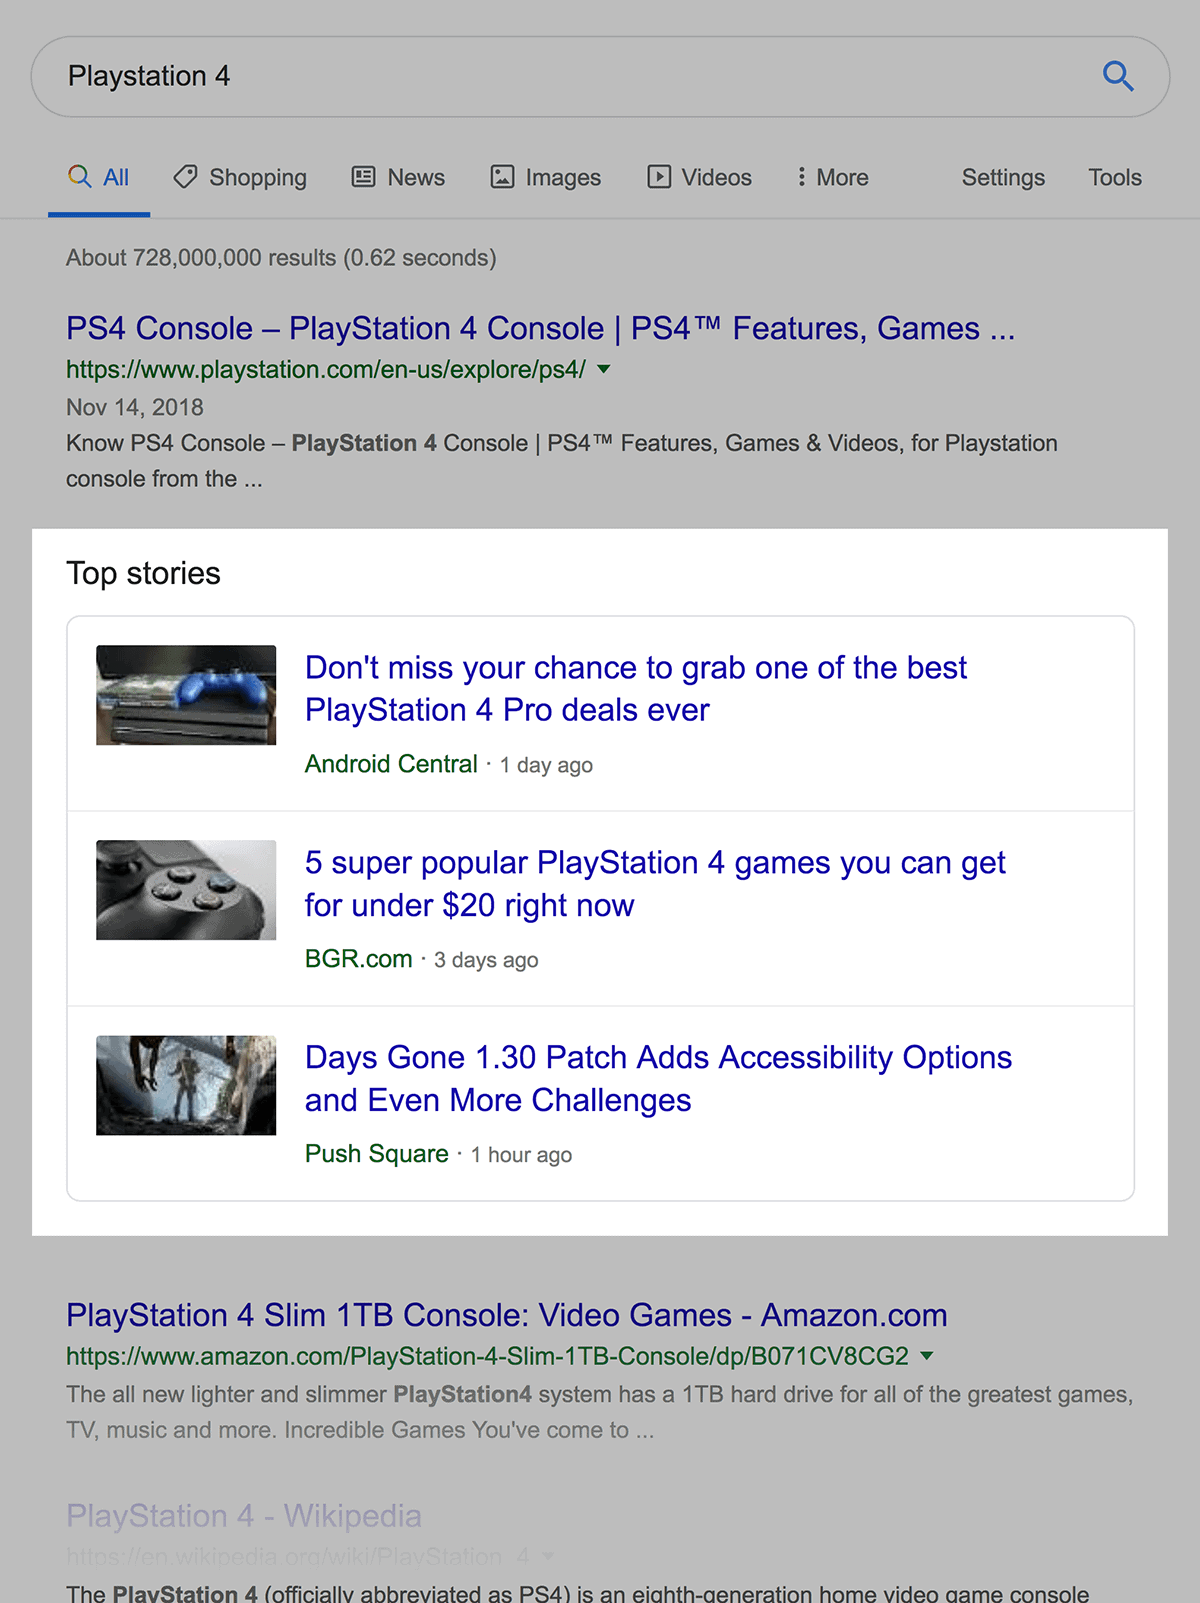 """Playstation 4"" Top Stories"